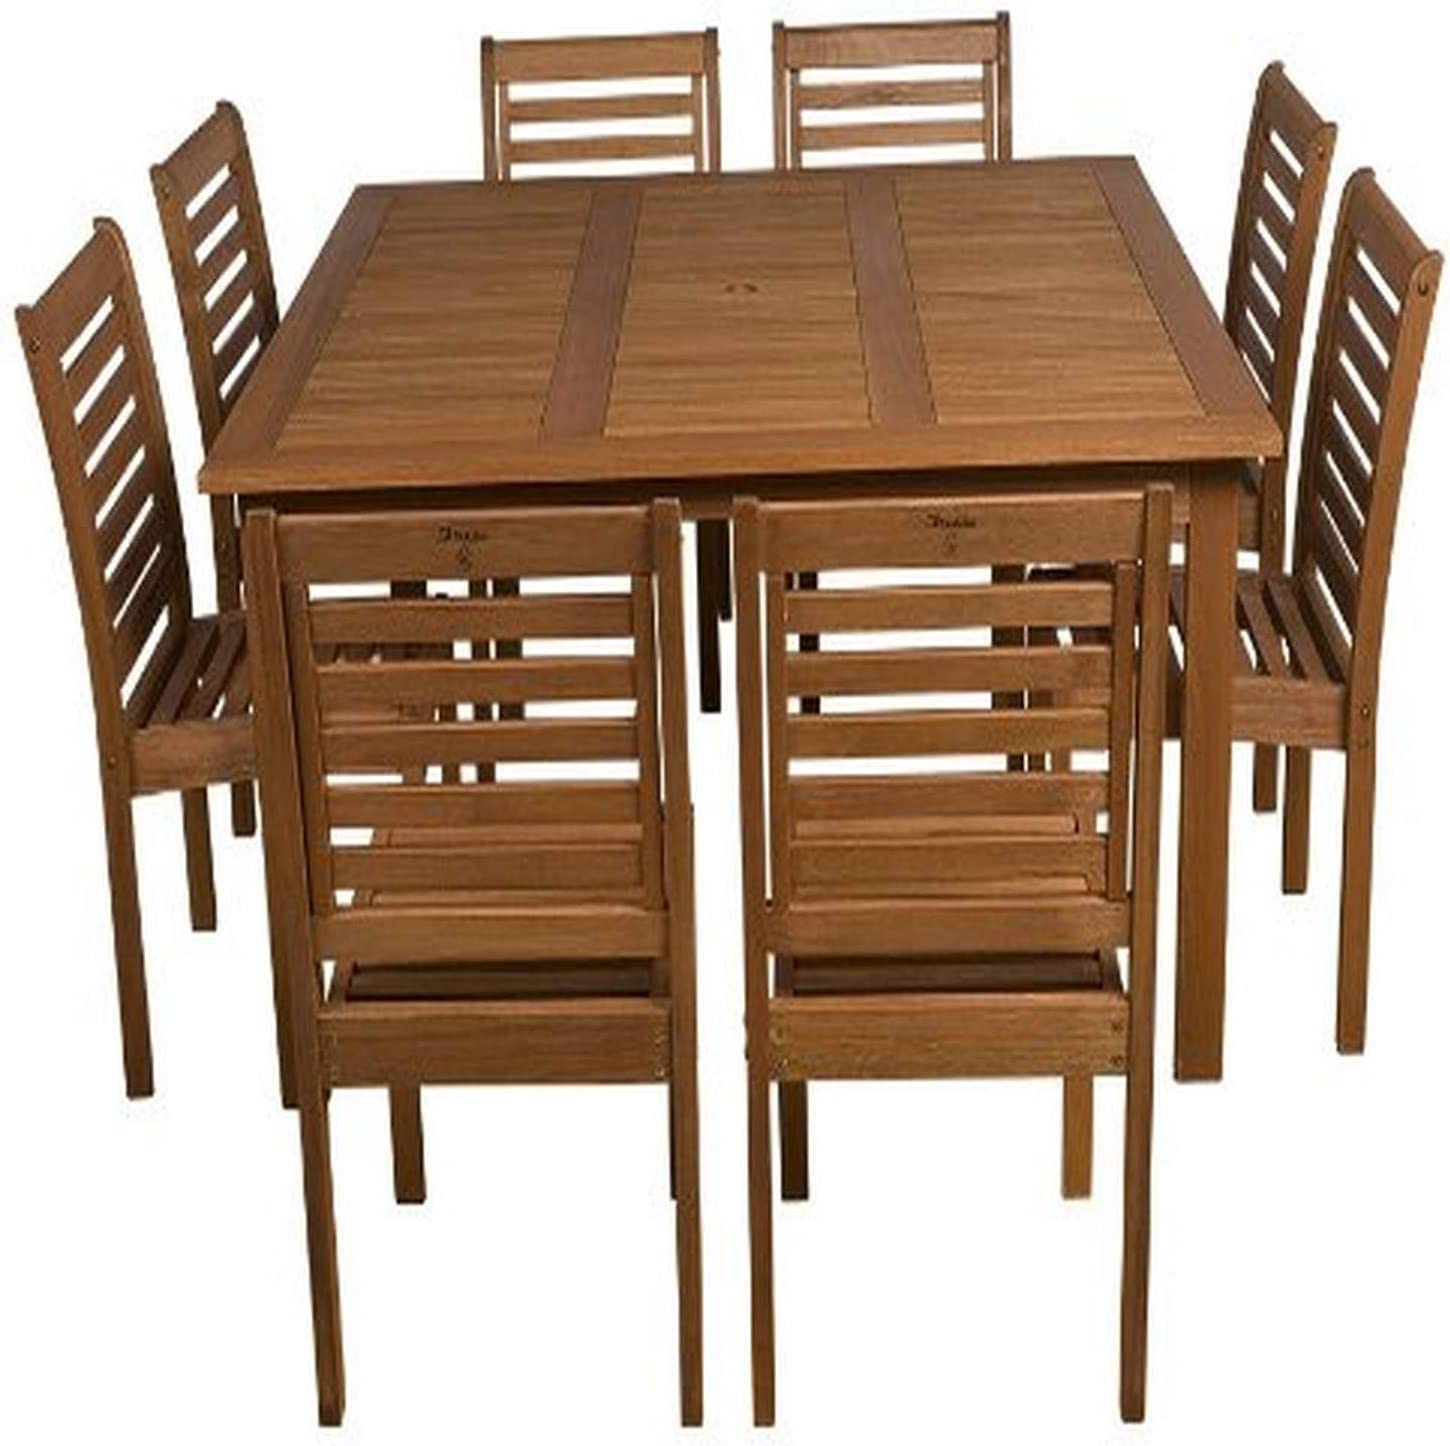 Amazonia Venice 9-Piece Outdoor Armless Square Dining Set | Eucalyptus Wood | Ideal